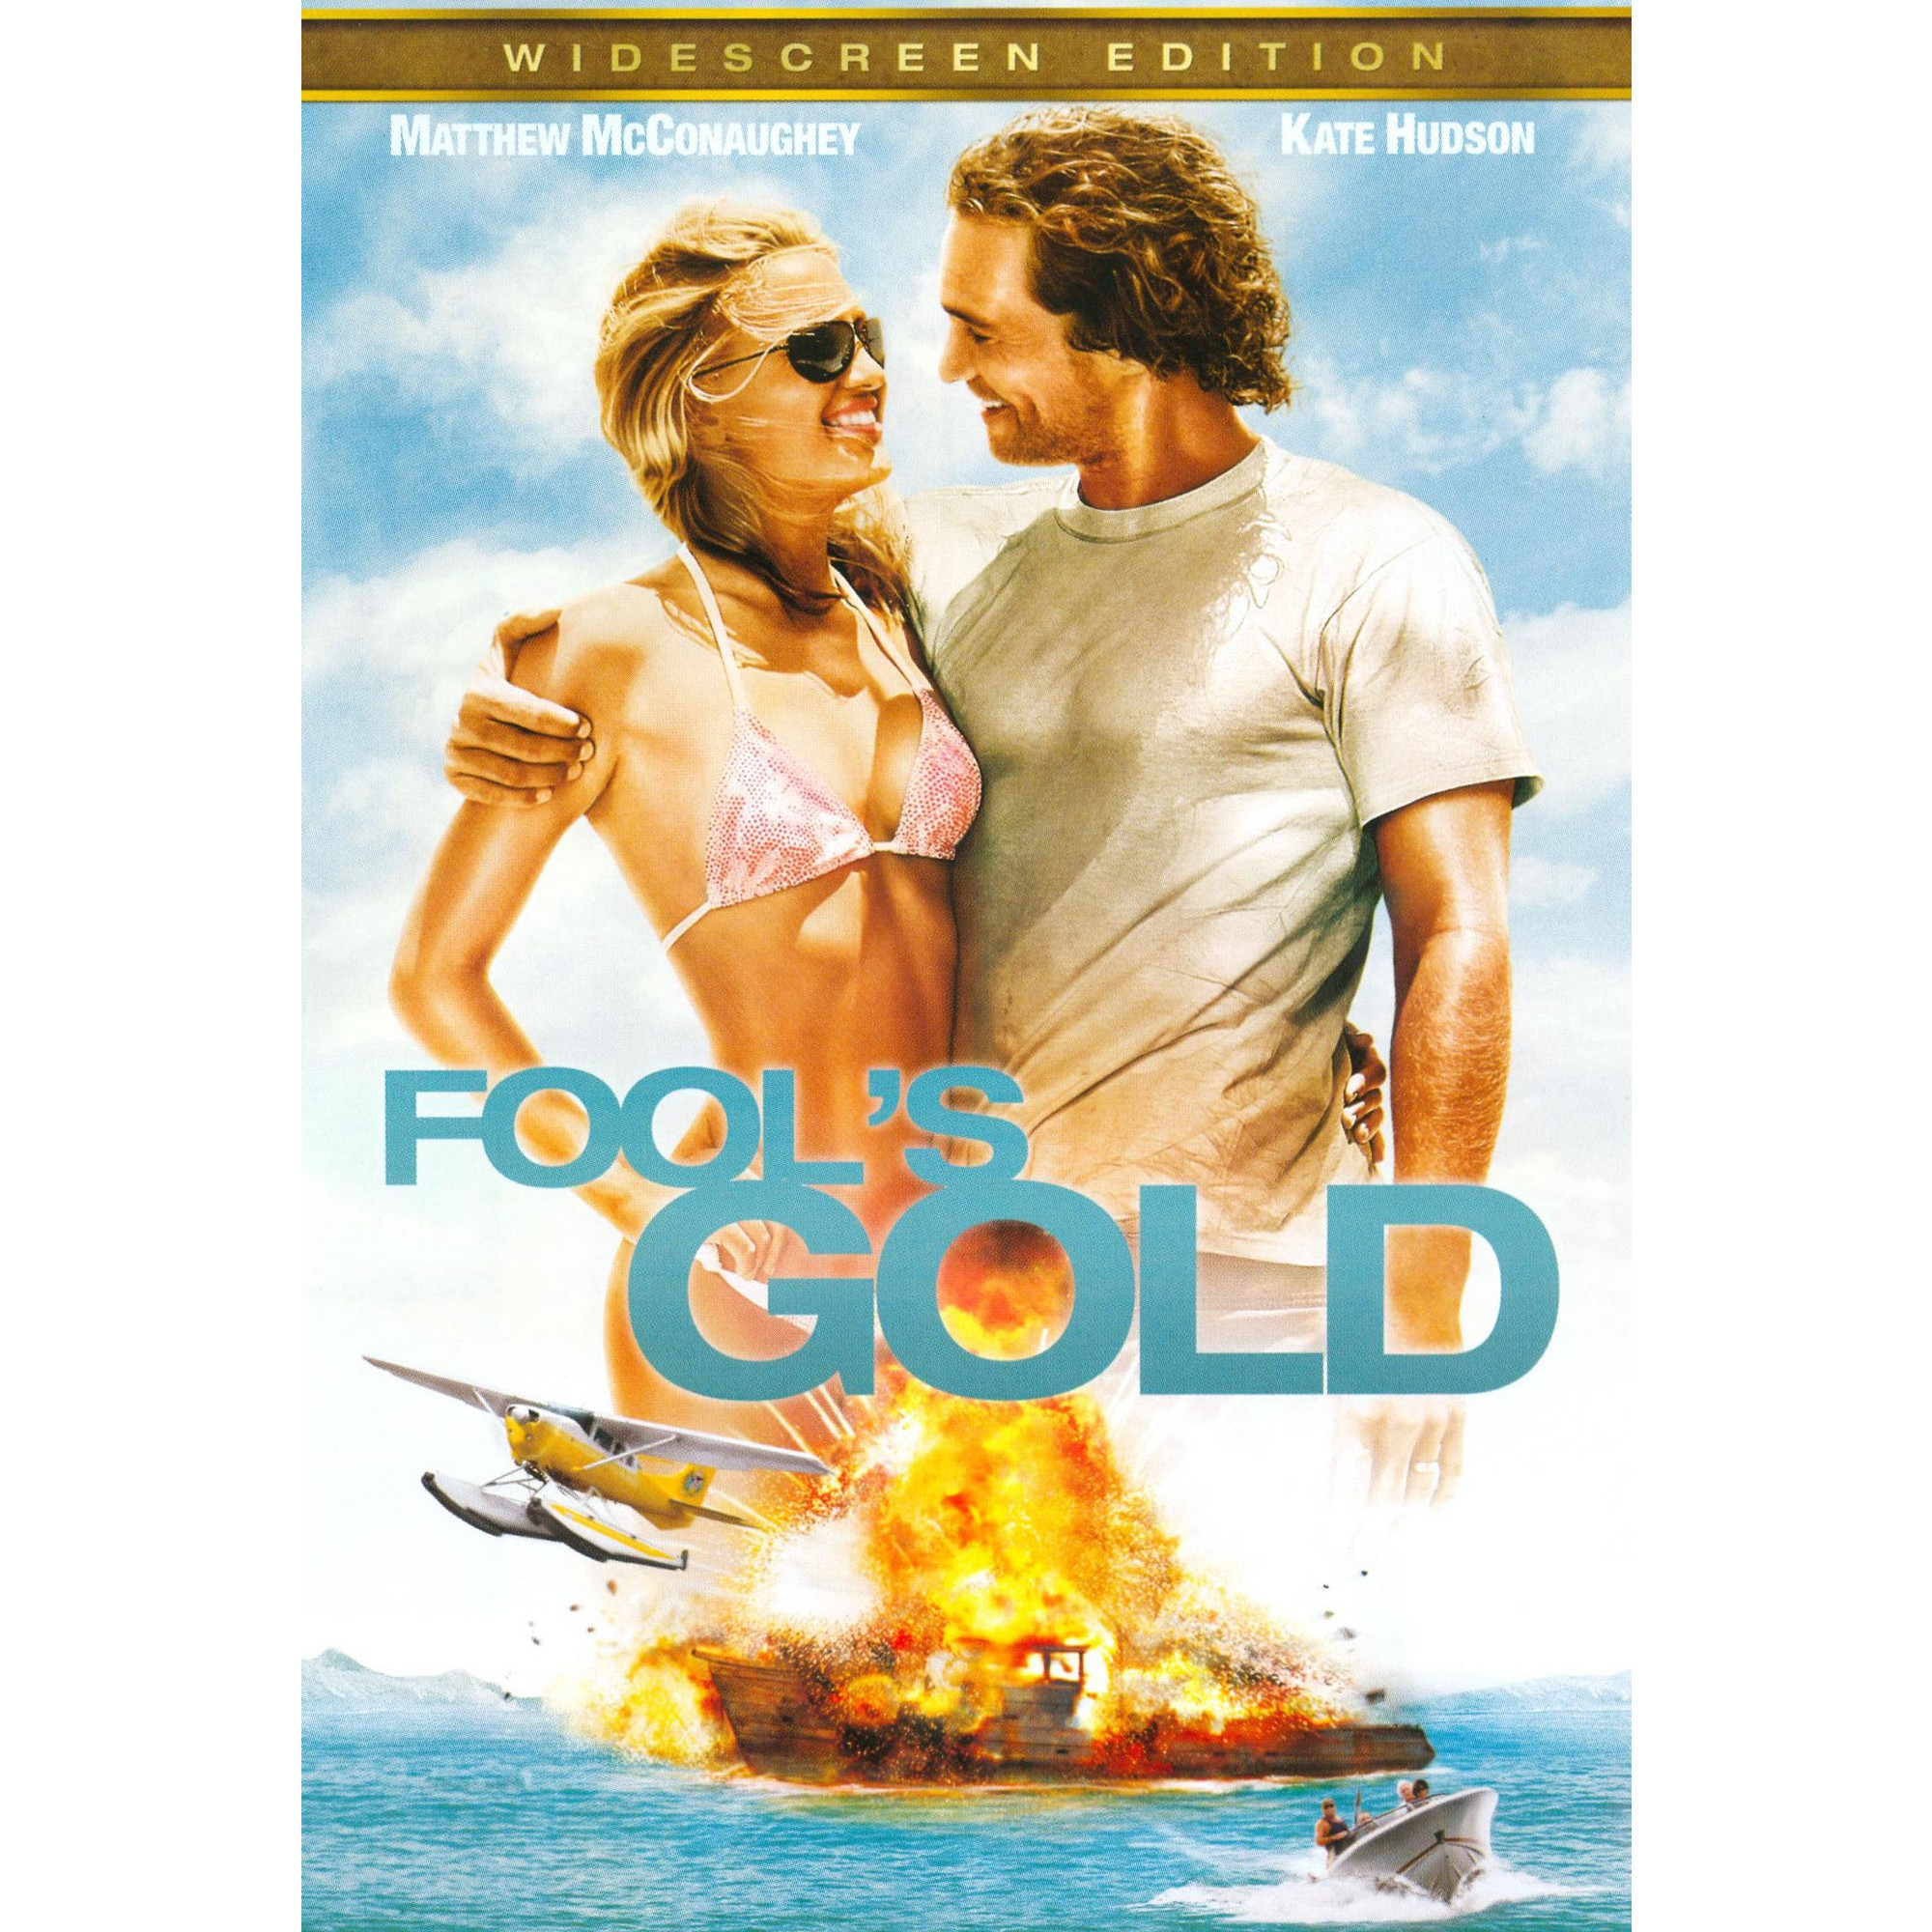 Fools gold ws dvd_video fools gold movie gold